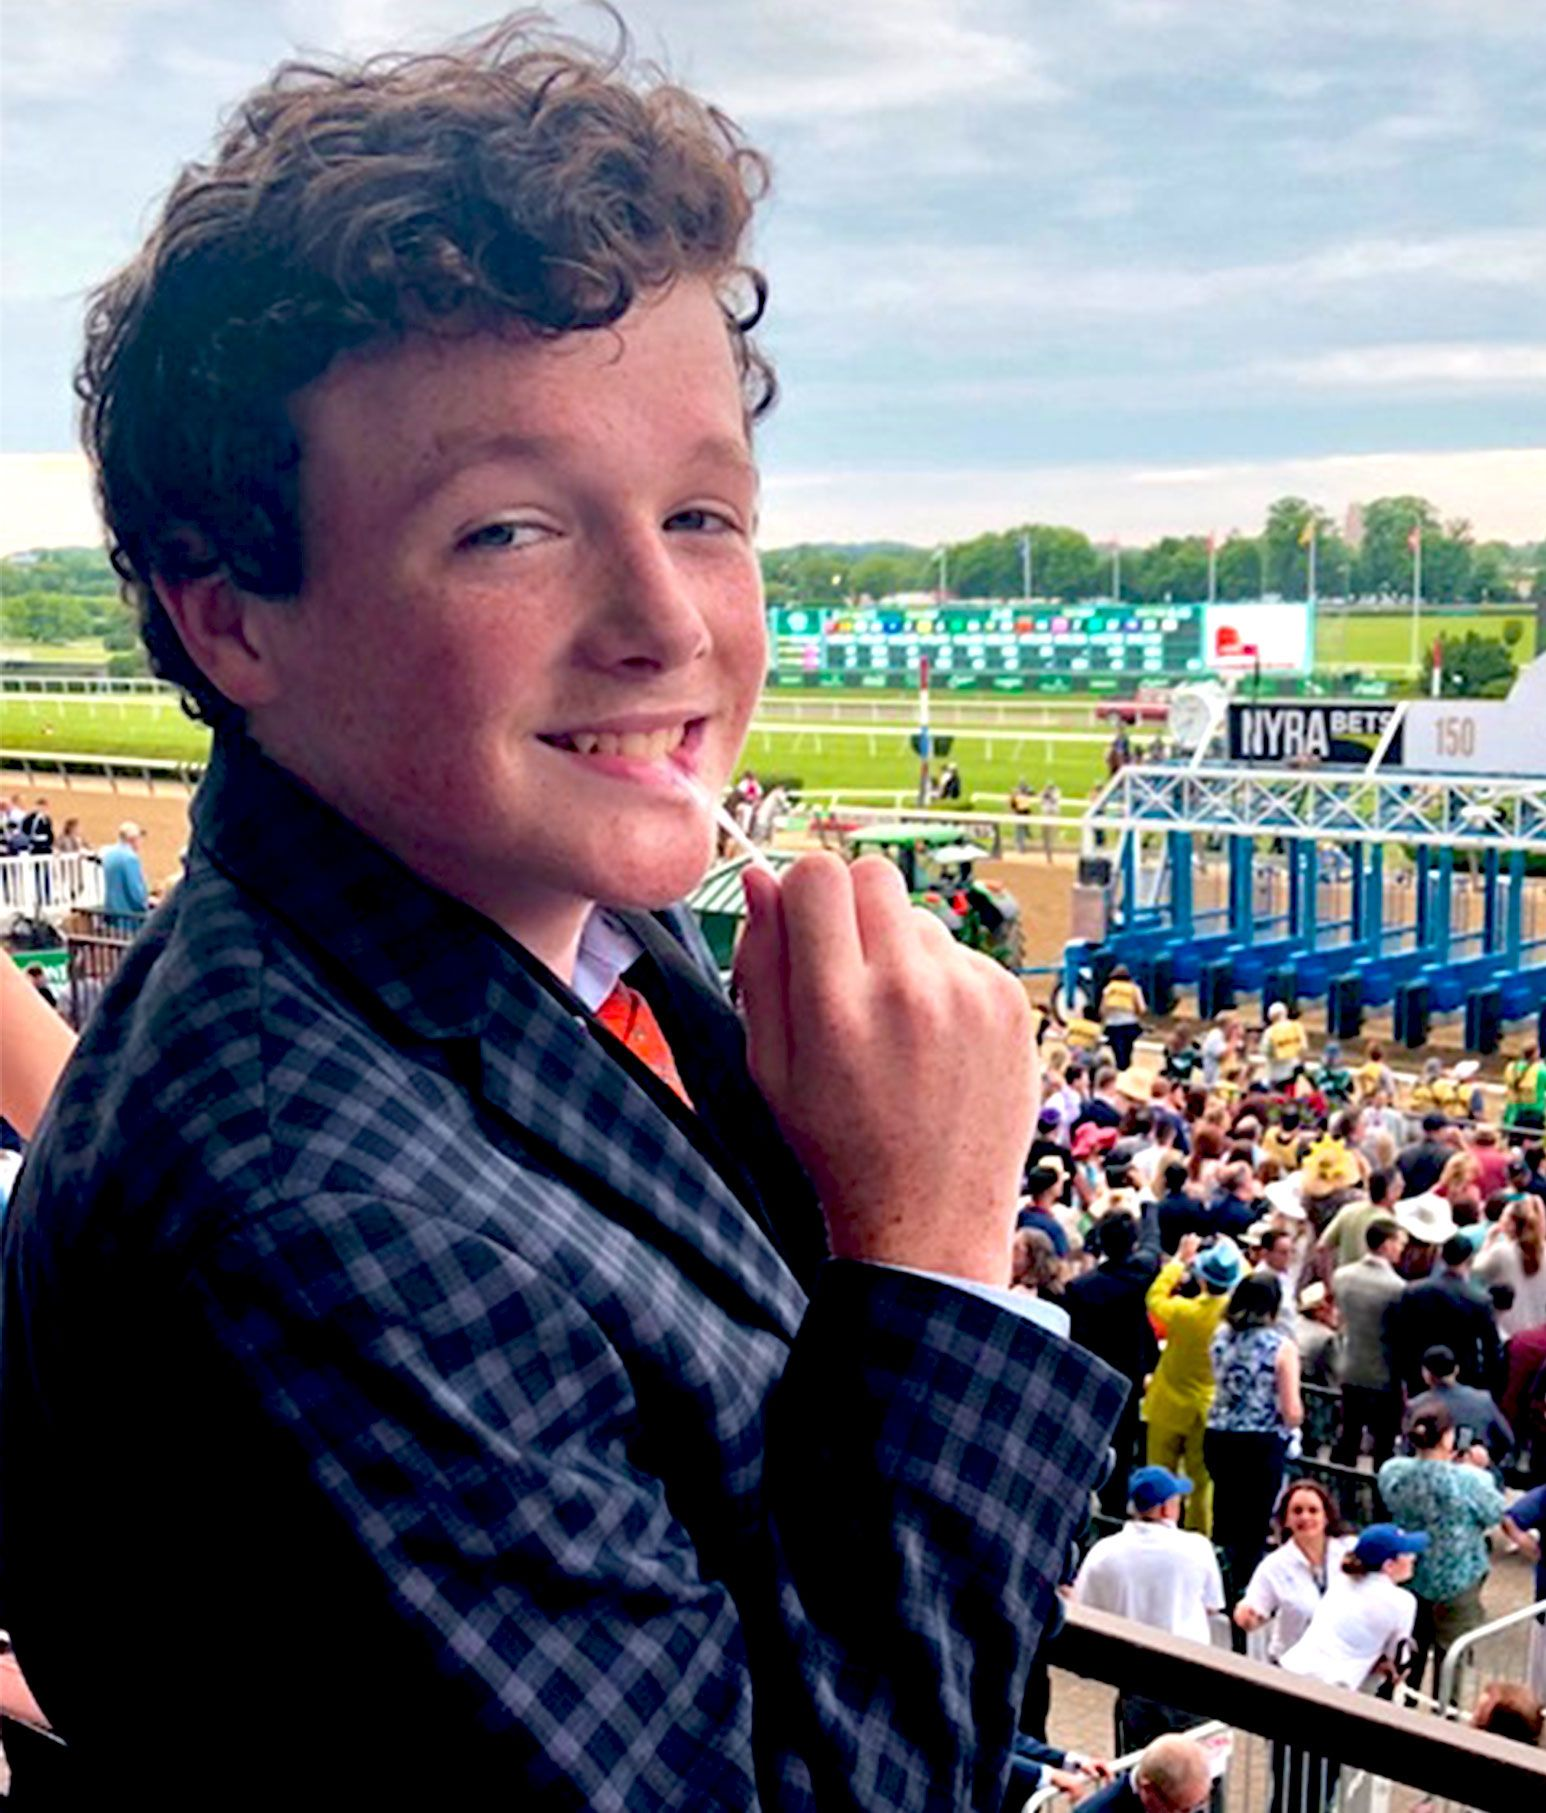 Young teenage boy with curly hair sits in the stands of a horse race track. He smiles for the camera while holding a lollipop in his mouth.